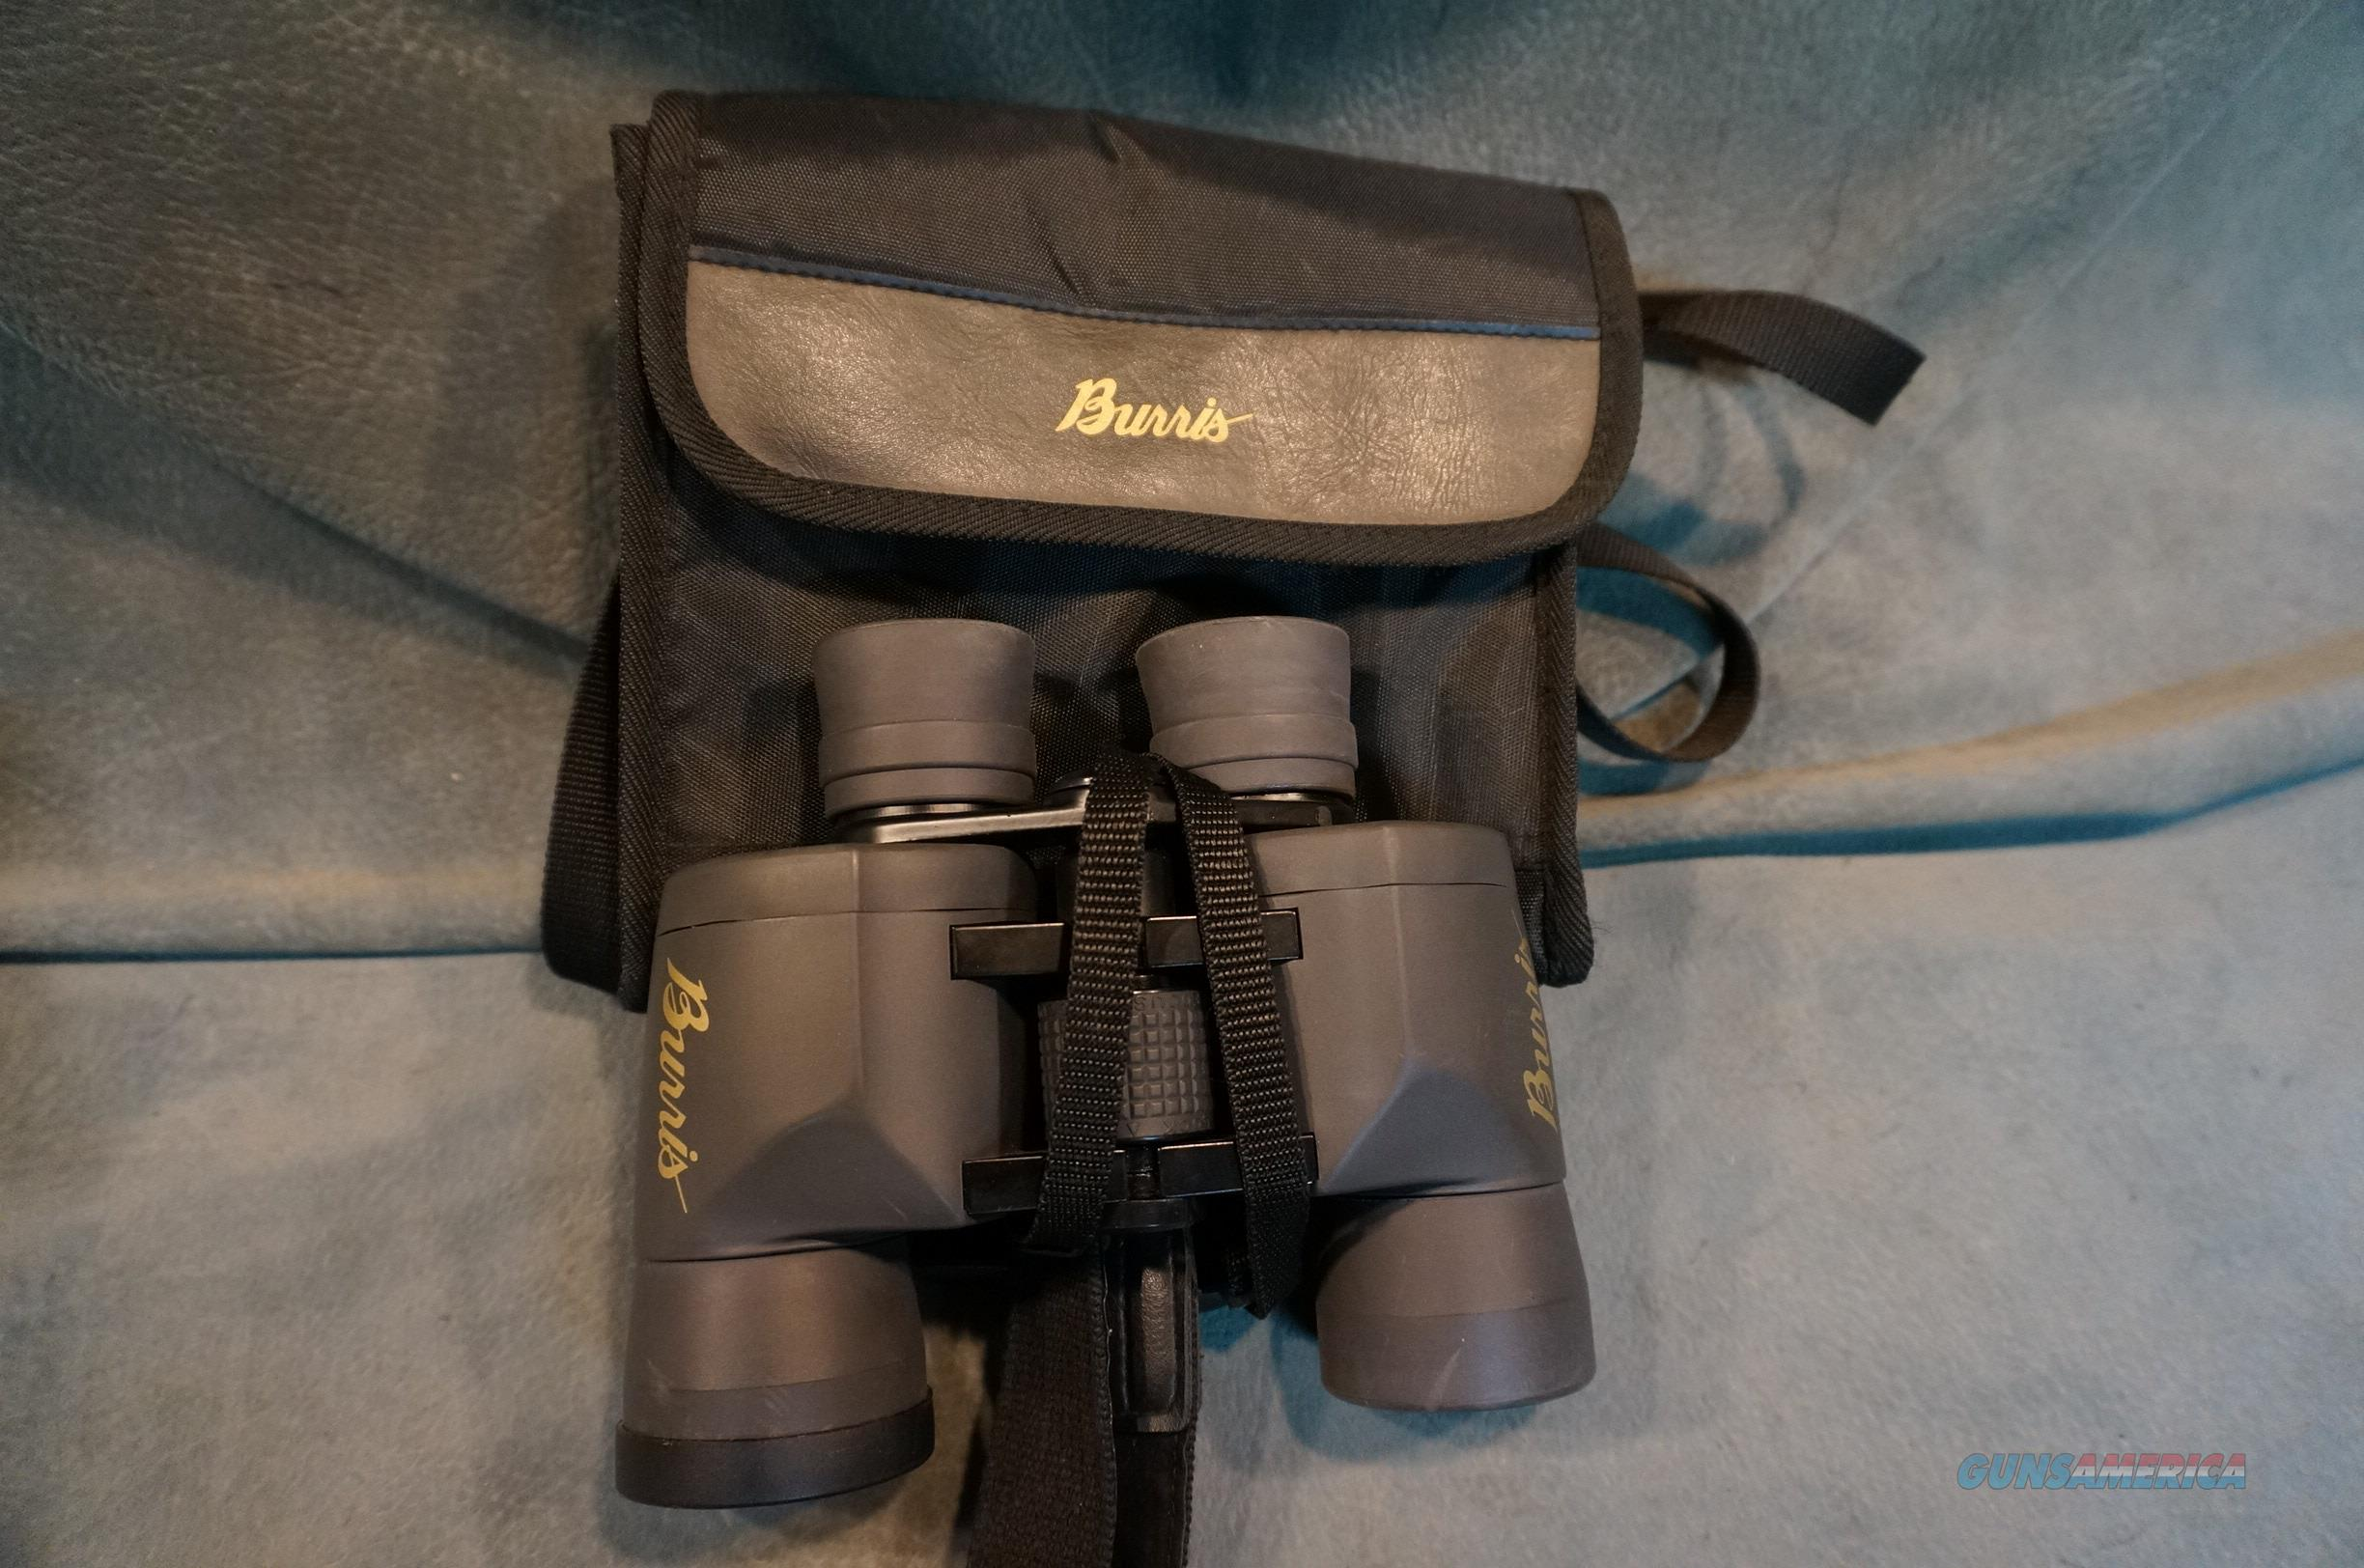 Burris 8X40 Long Eyerelief binoculars NO SALE!  Non-Guns > Scopes/Mounts/Rings & Optics > Non-Scope Optics > Binoculars